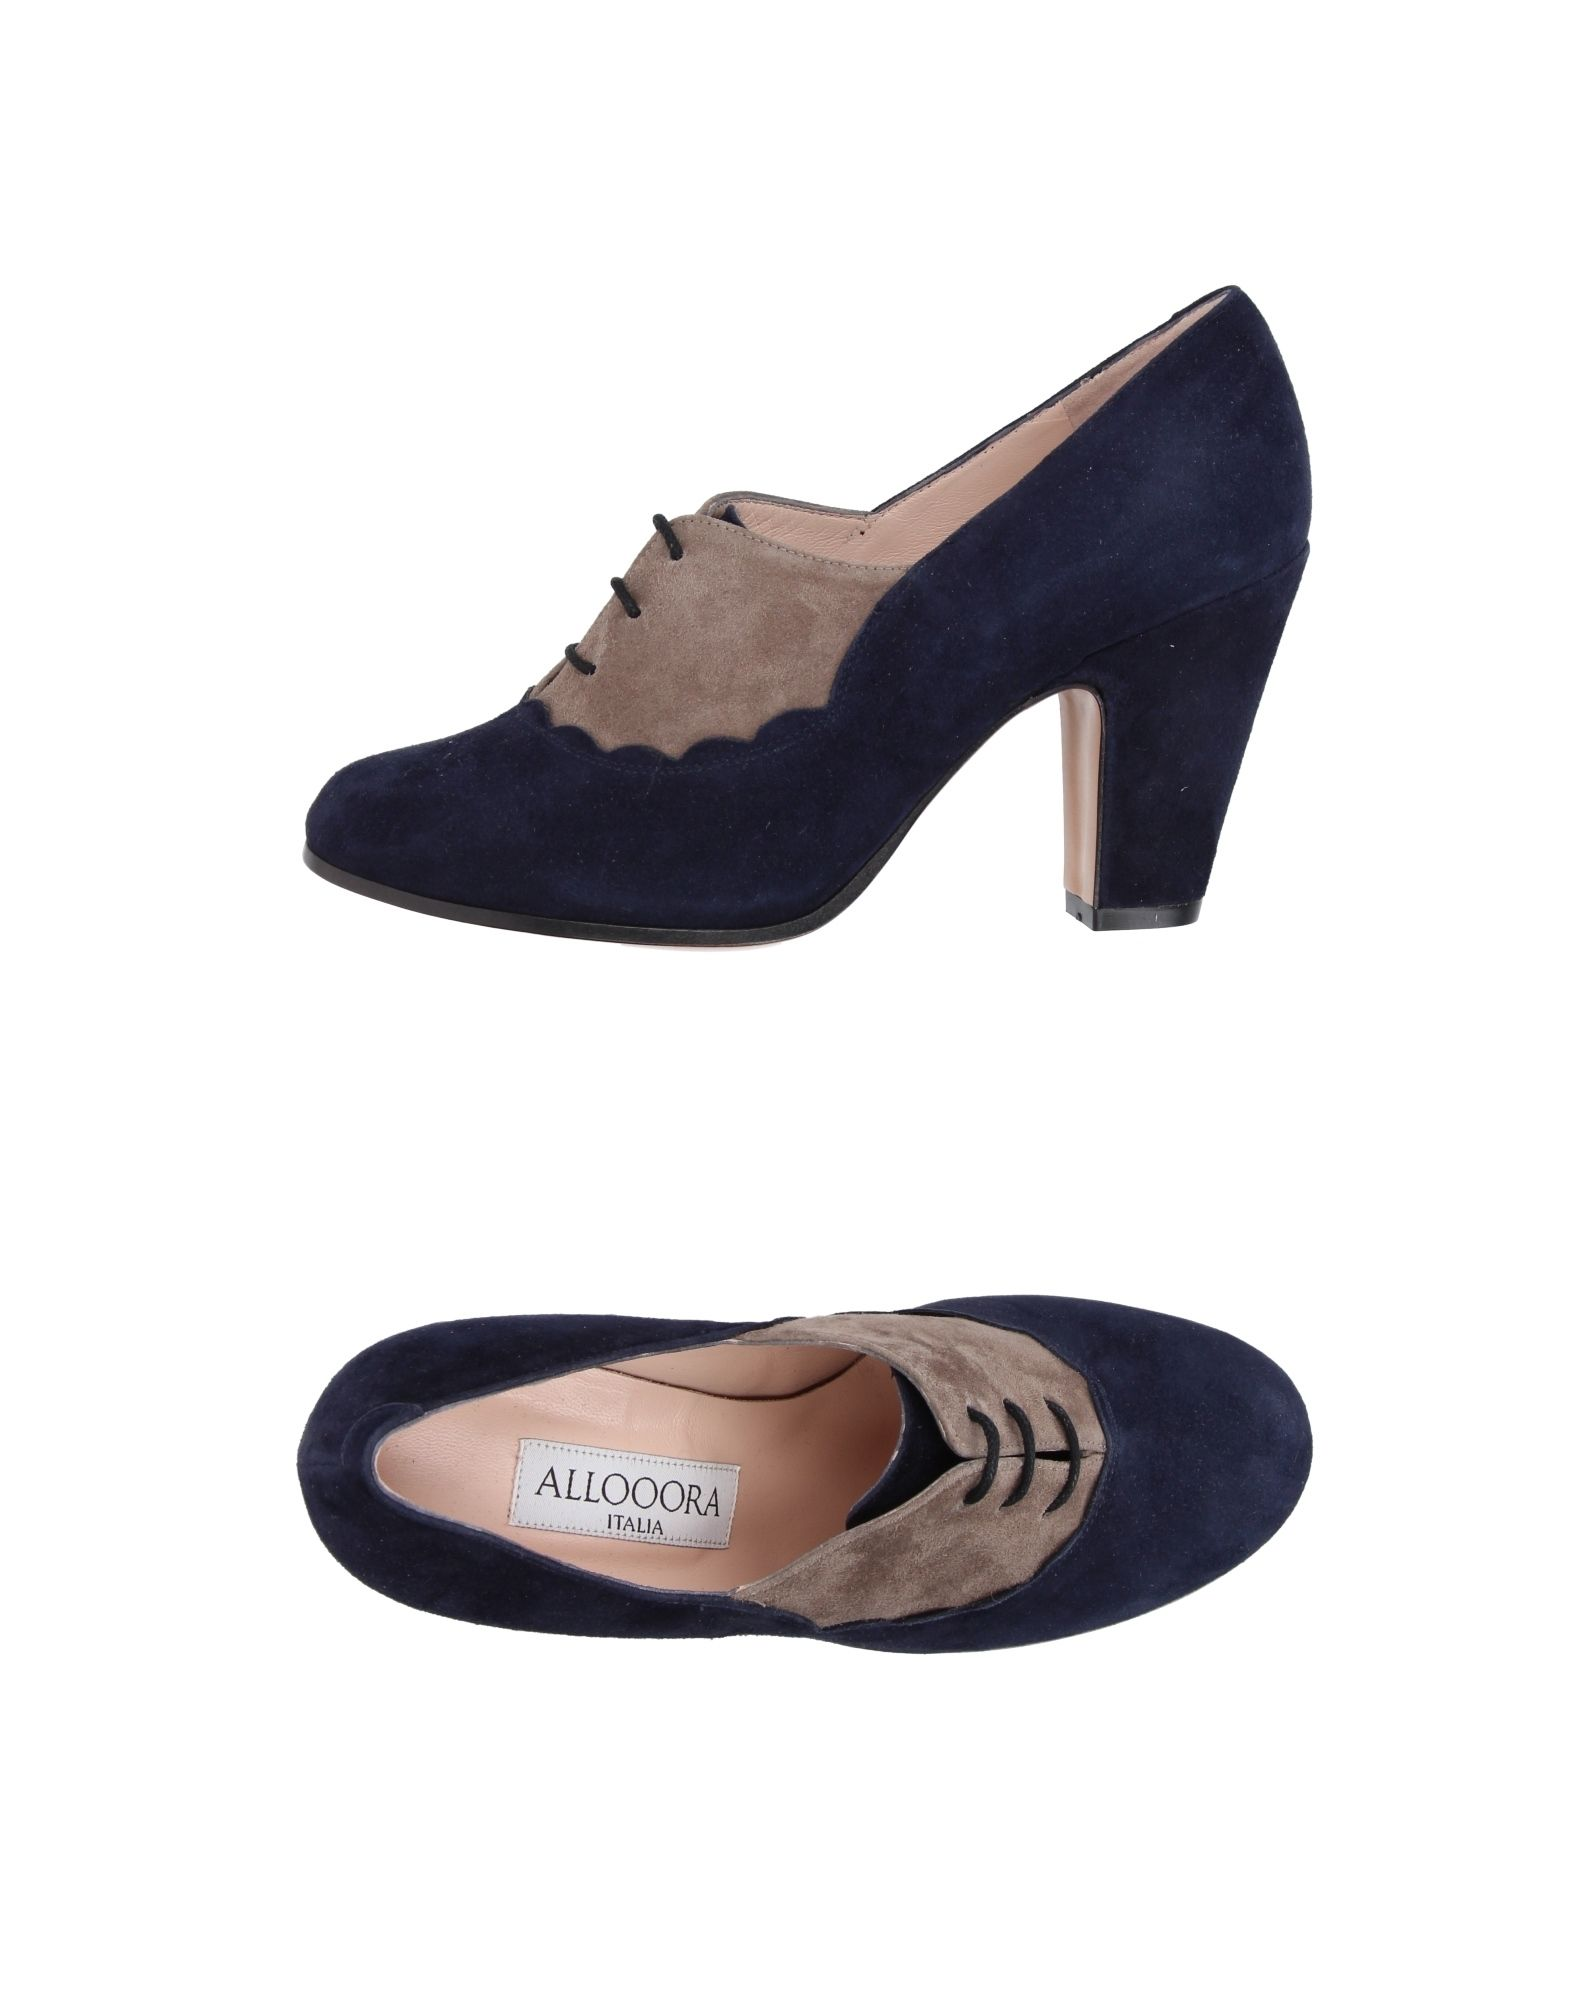 Chaussures À Lacets Allooora Femme - Chaussures À Lacets Allooora sur